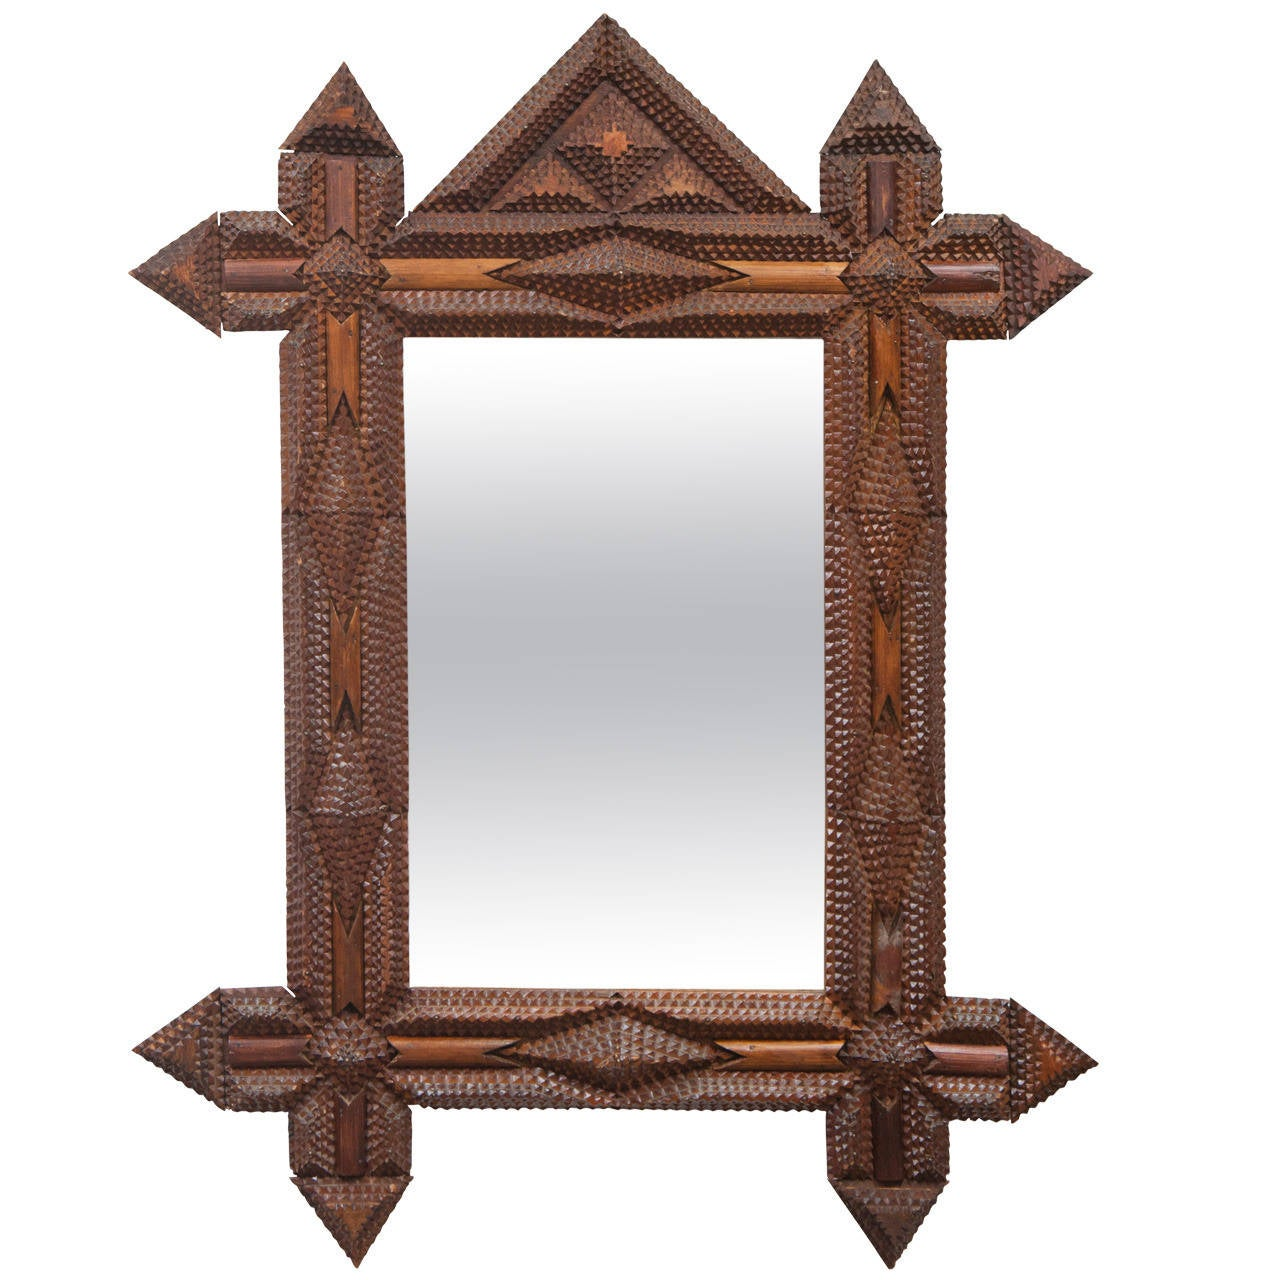 Tramp Art Mirror With Original Glass For Sale At 1stdibs